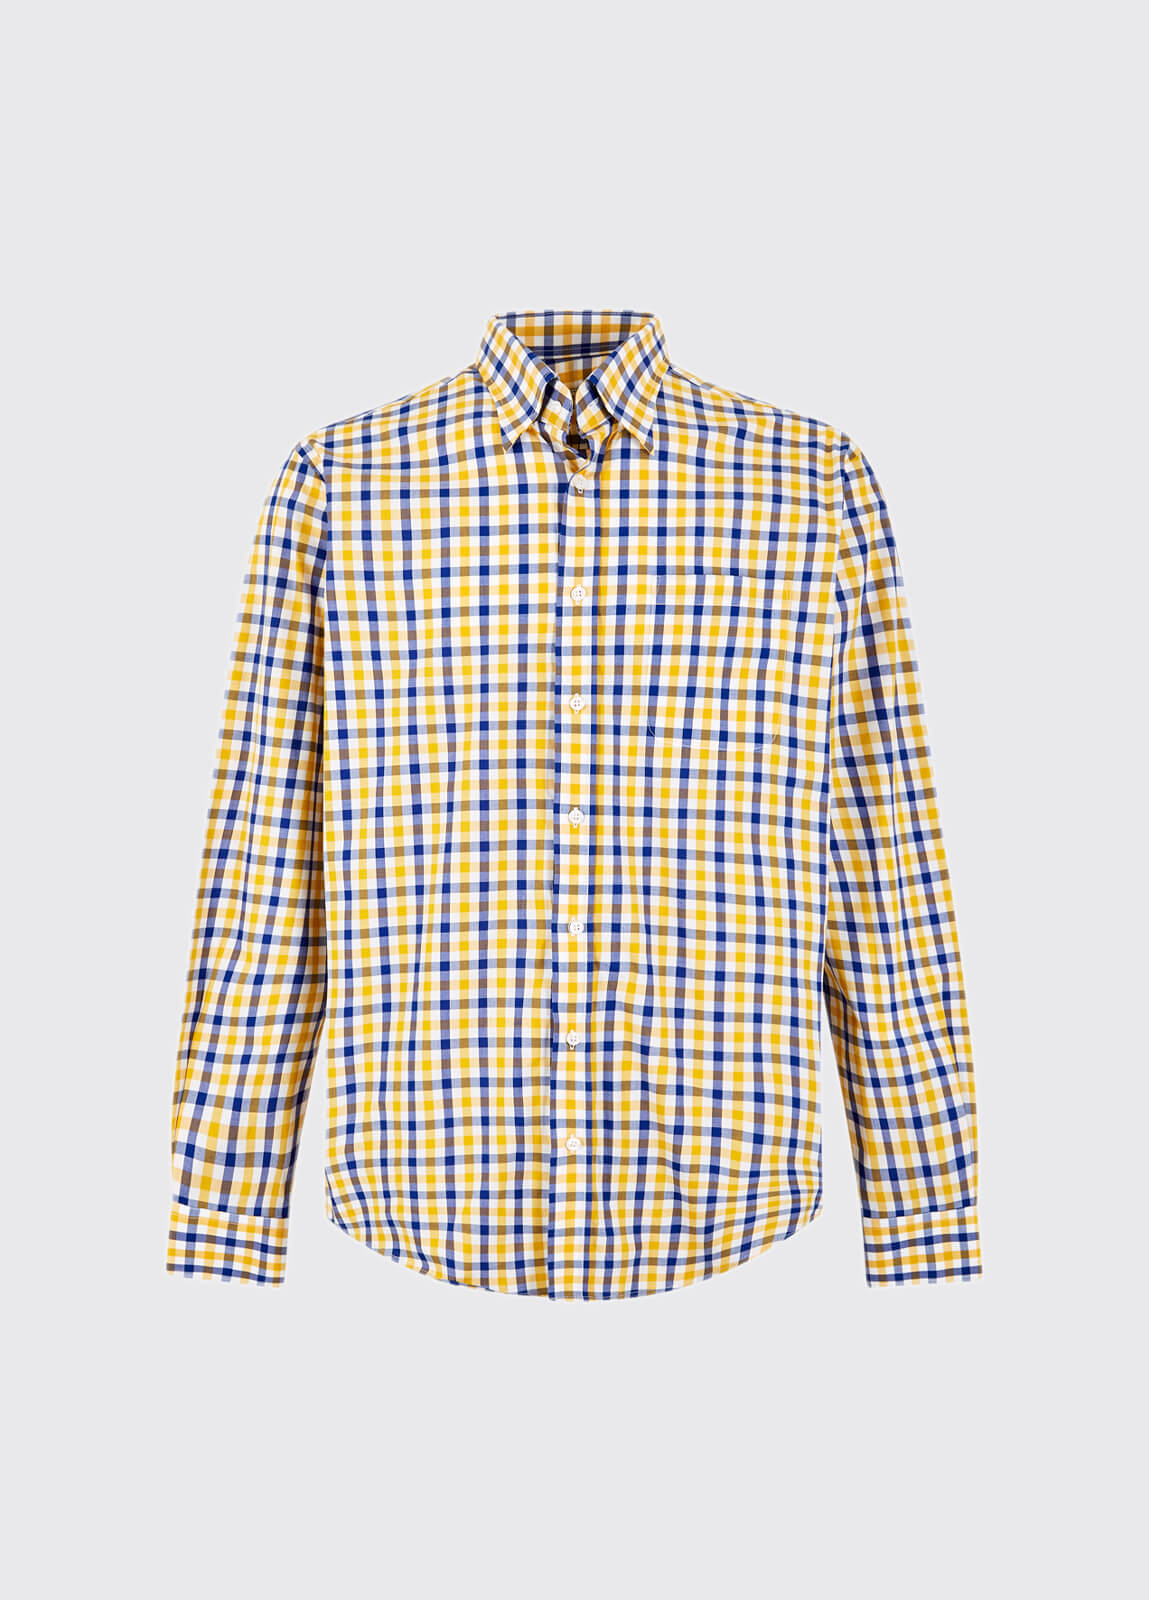 Coachford Shirt - Sunflower